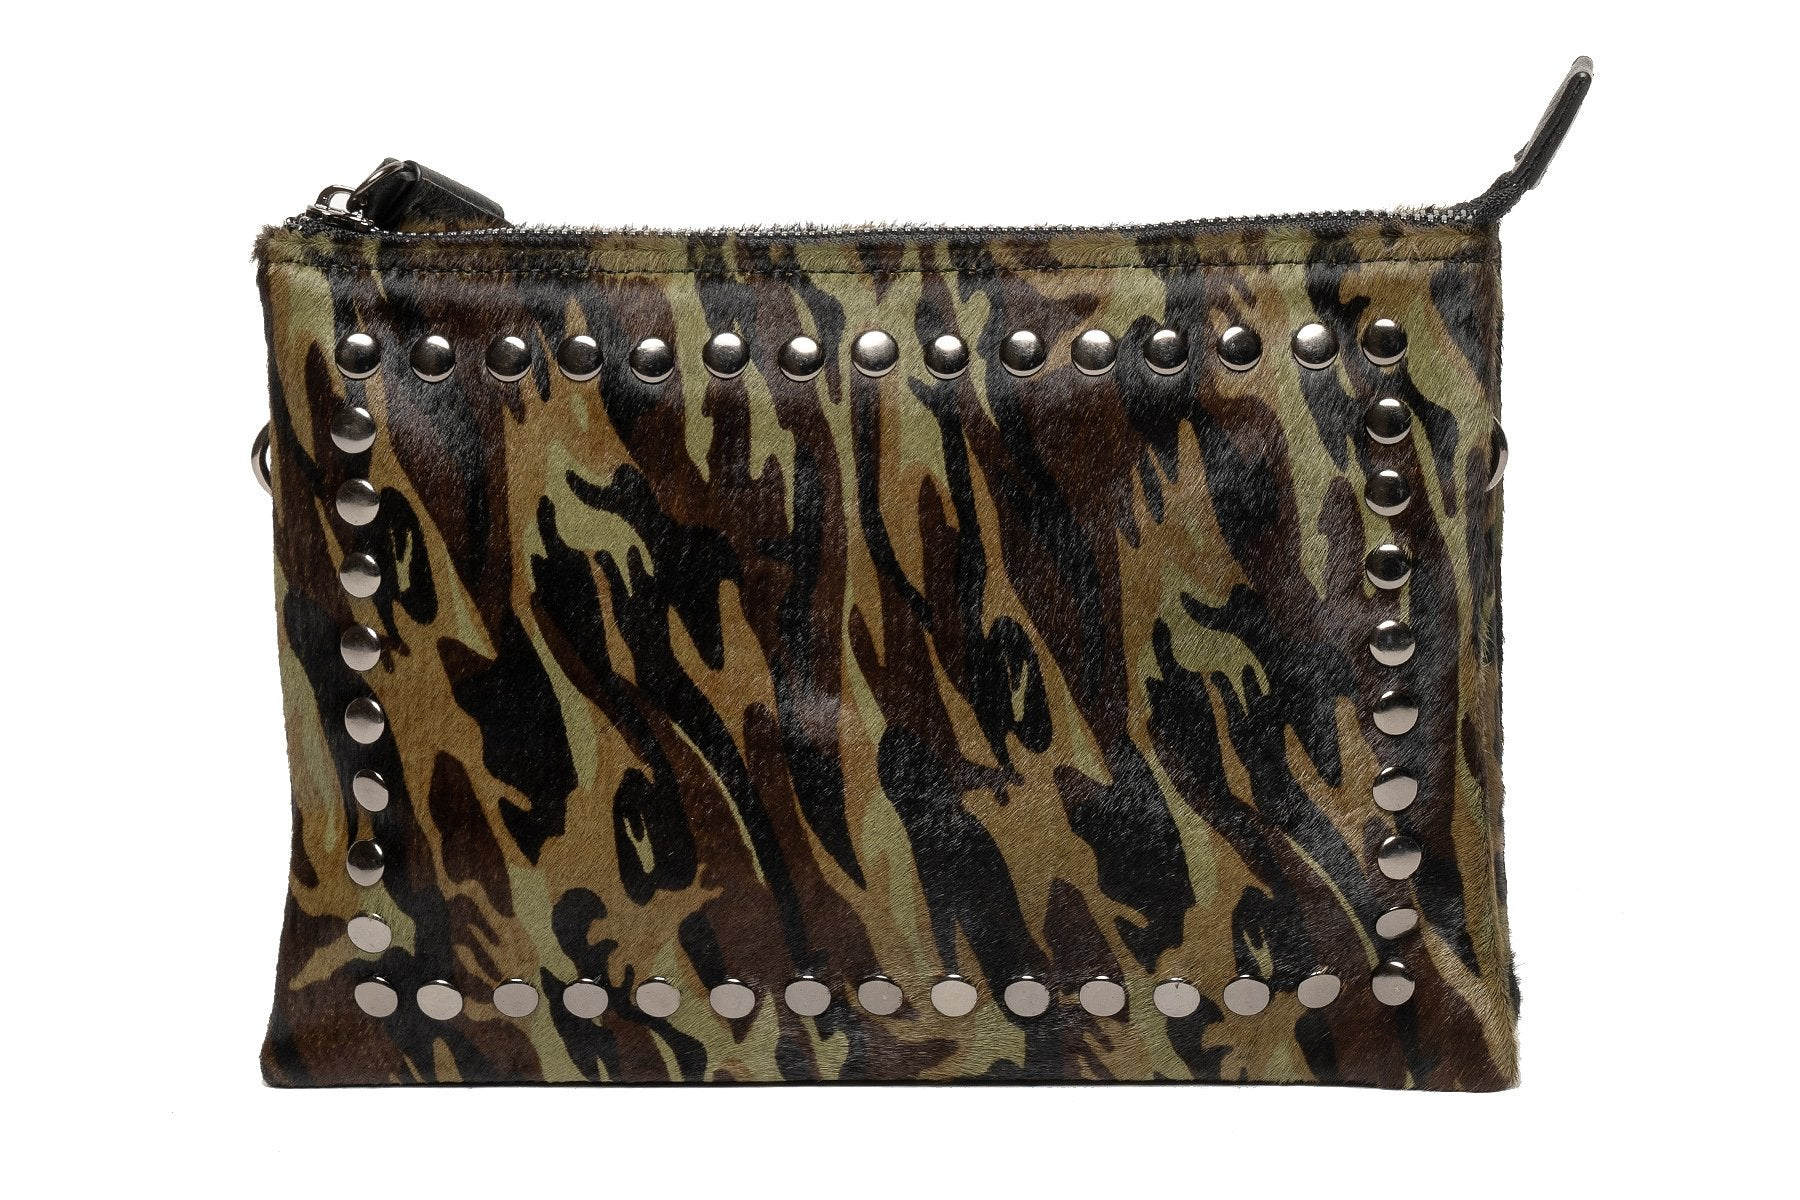 City Bag | Dark Camo Hair - Susie O's Handbags